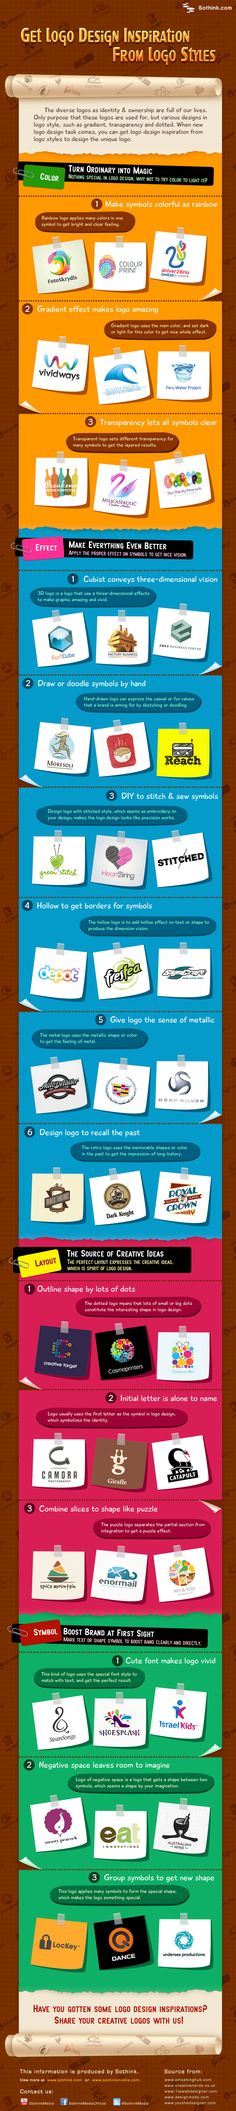 logo-design-inspiration-styles-infographic. Thanks Bit Rebels!